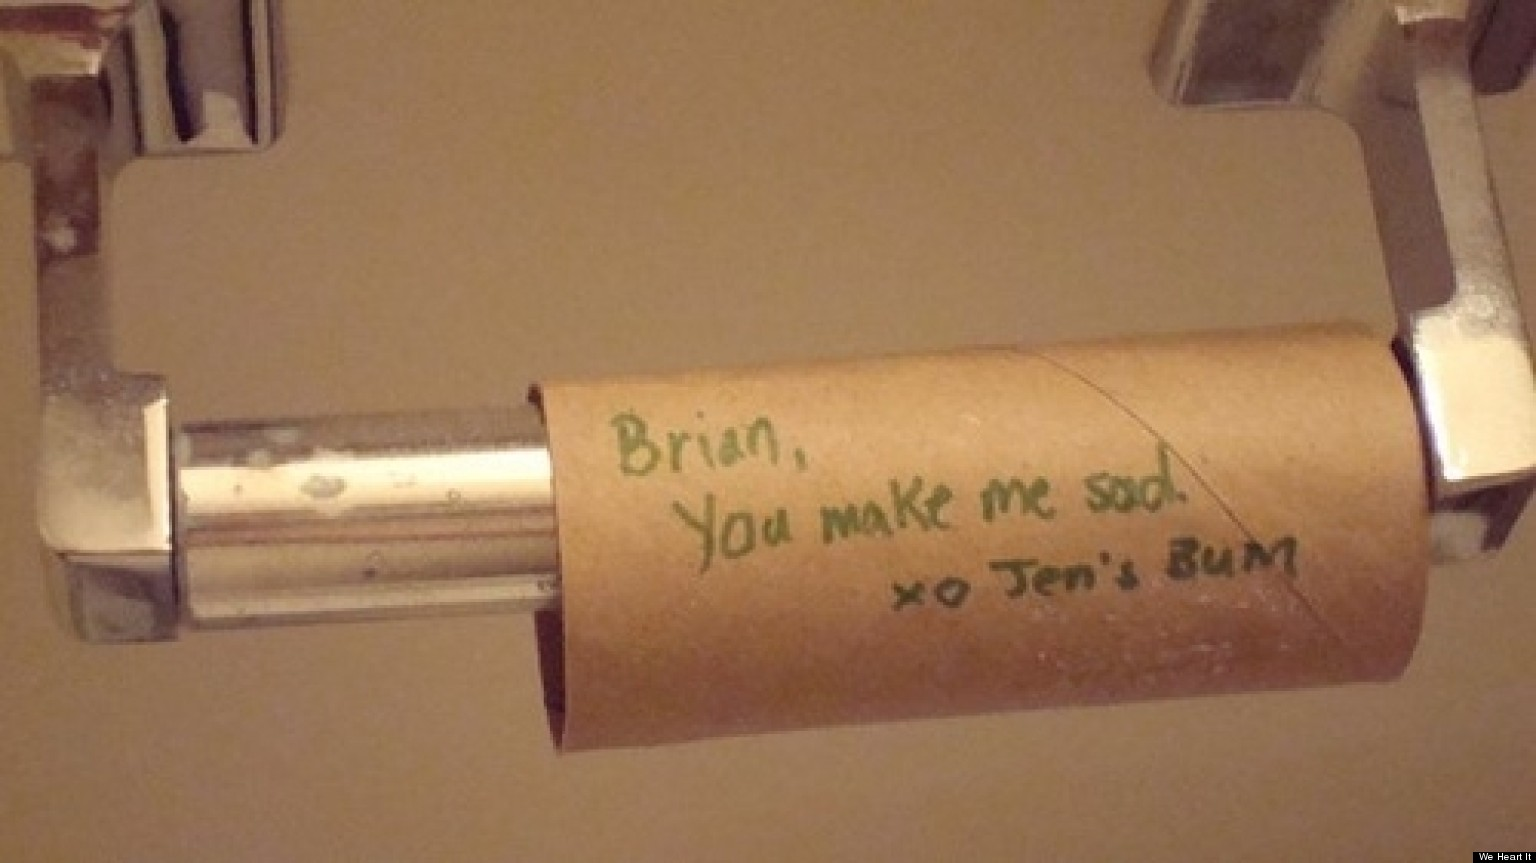 Bathroom Notes Are A Thing And They Are Hilarious Cant Change - 22 hilarious bathroom stall messages that will leave you laughing